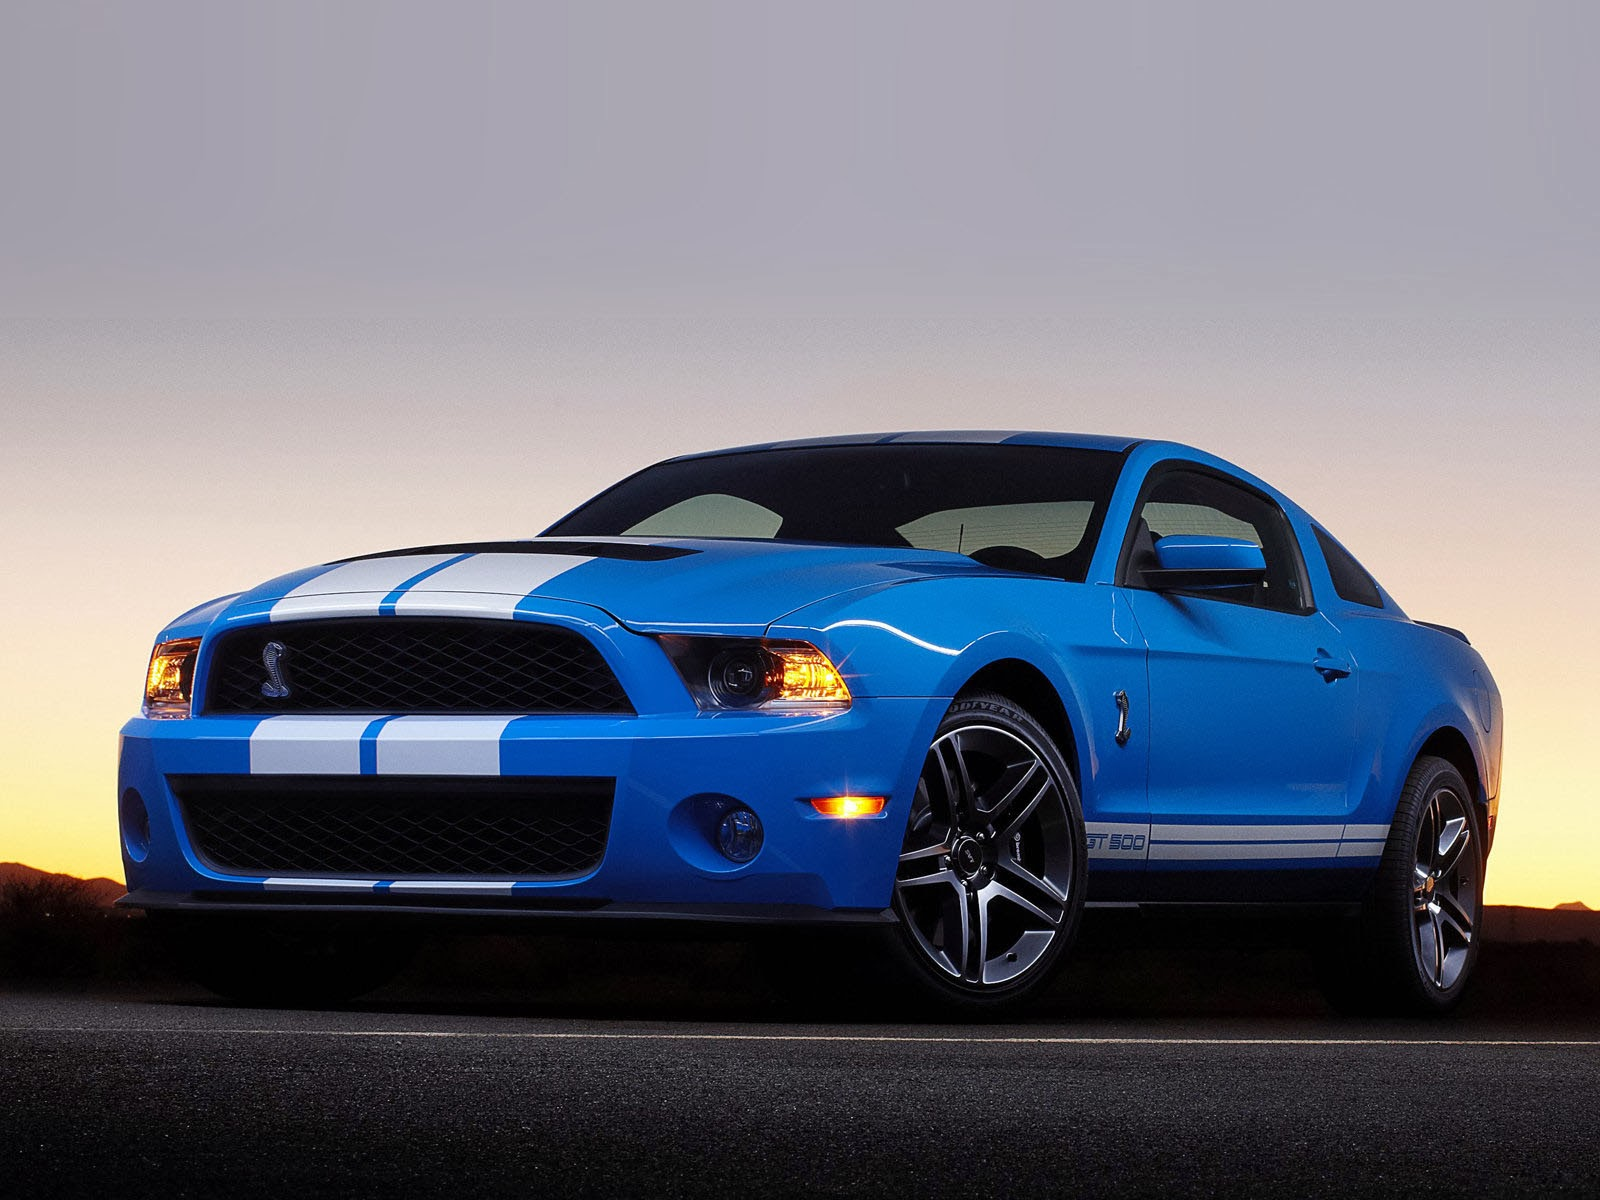 Ford shelby photo - 3